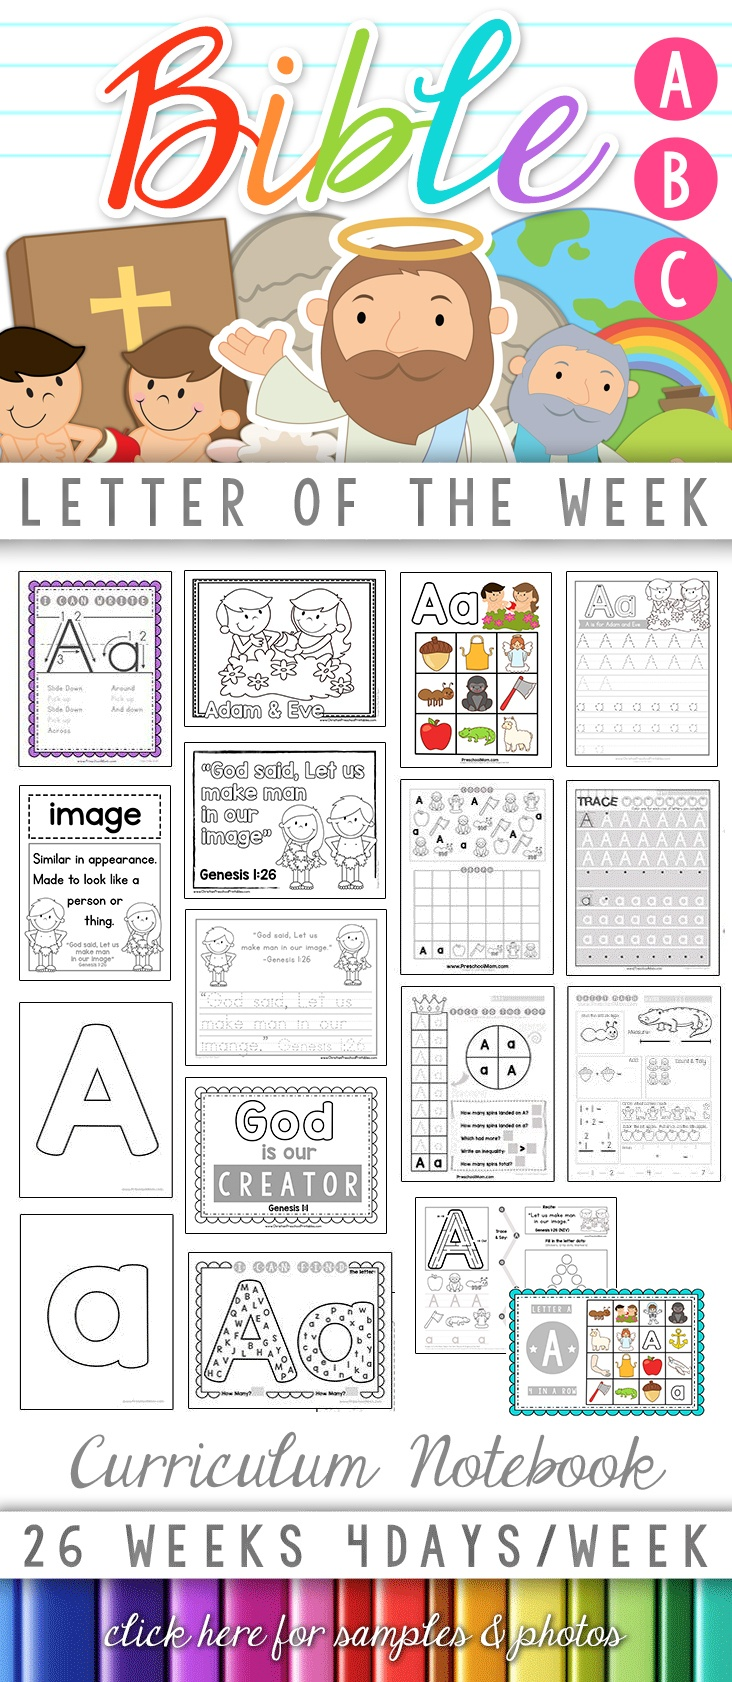 Bible Abc Printables - Christian Preschool Printables - Free Printable Bible Lessons For Toddlers